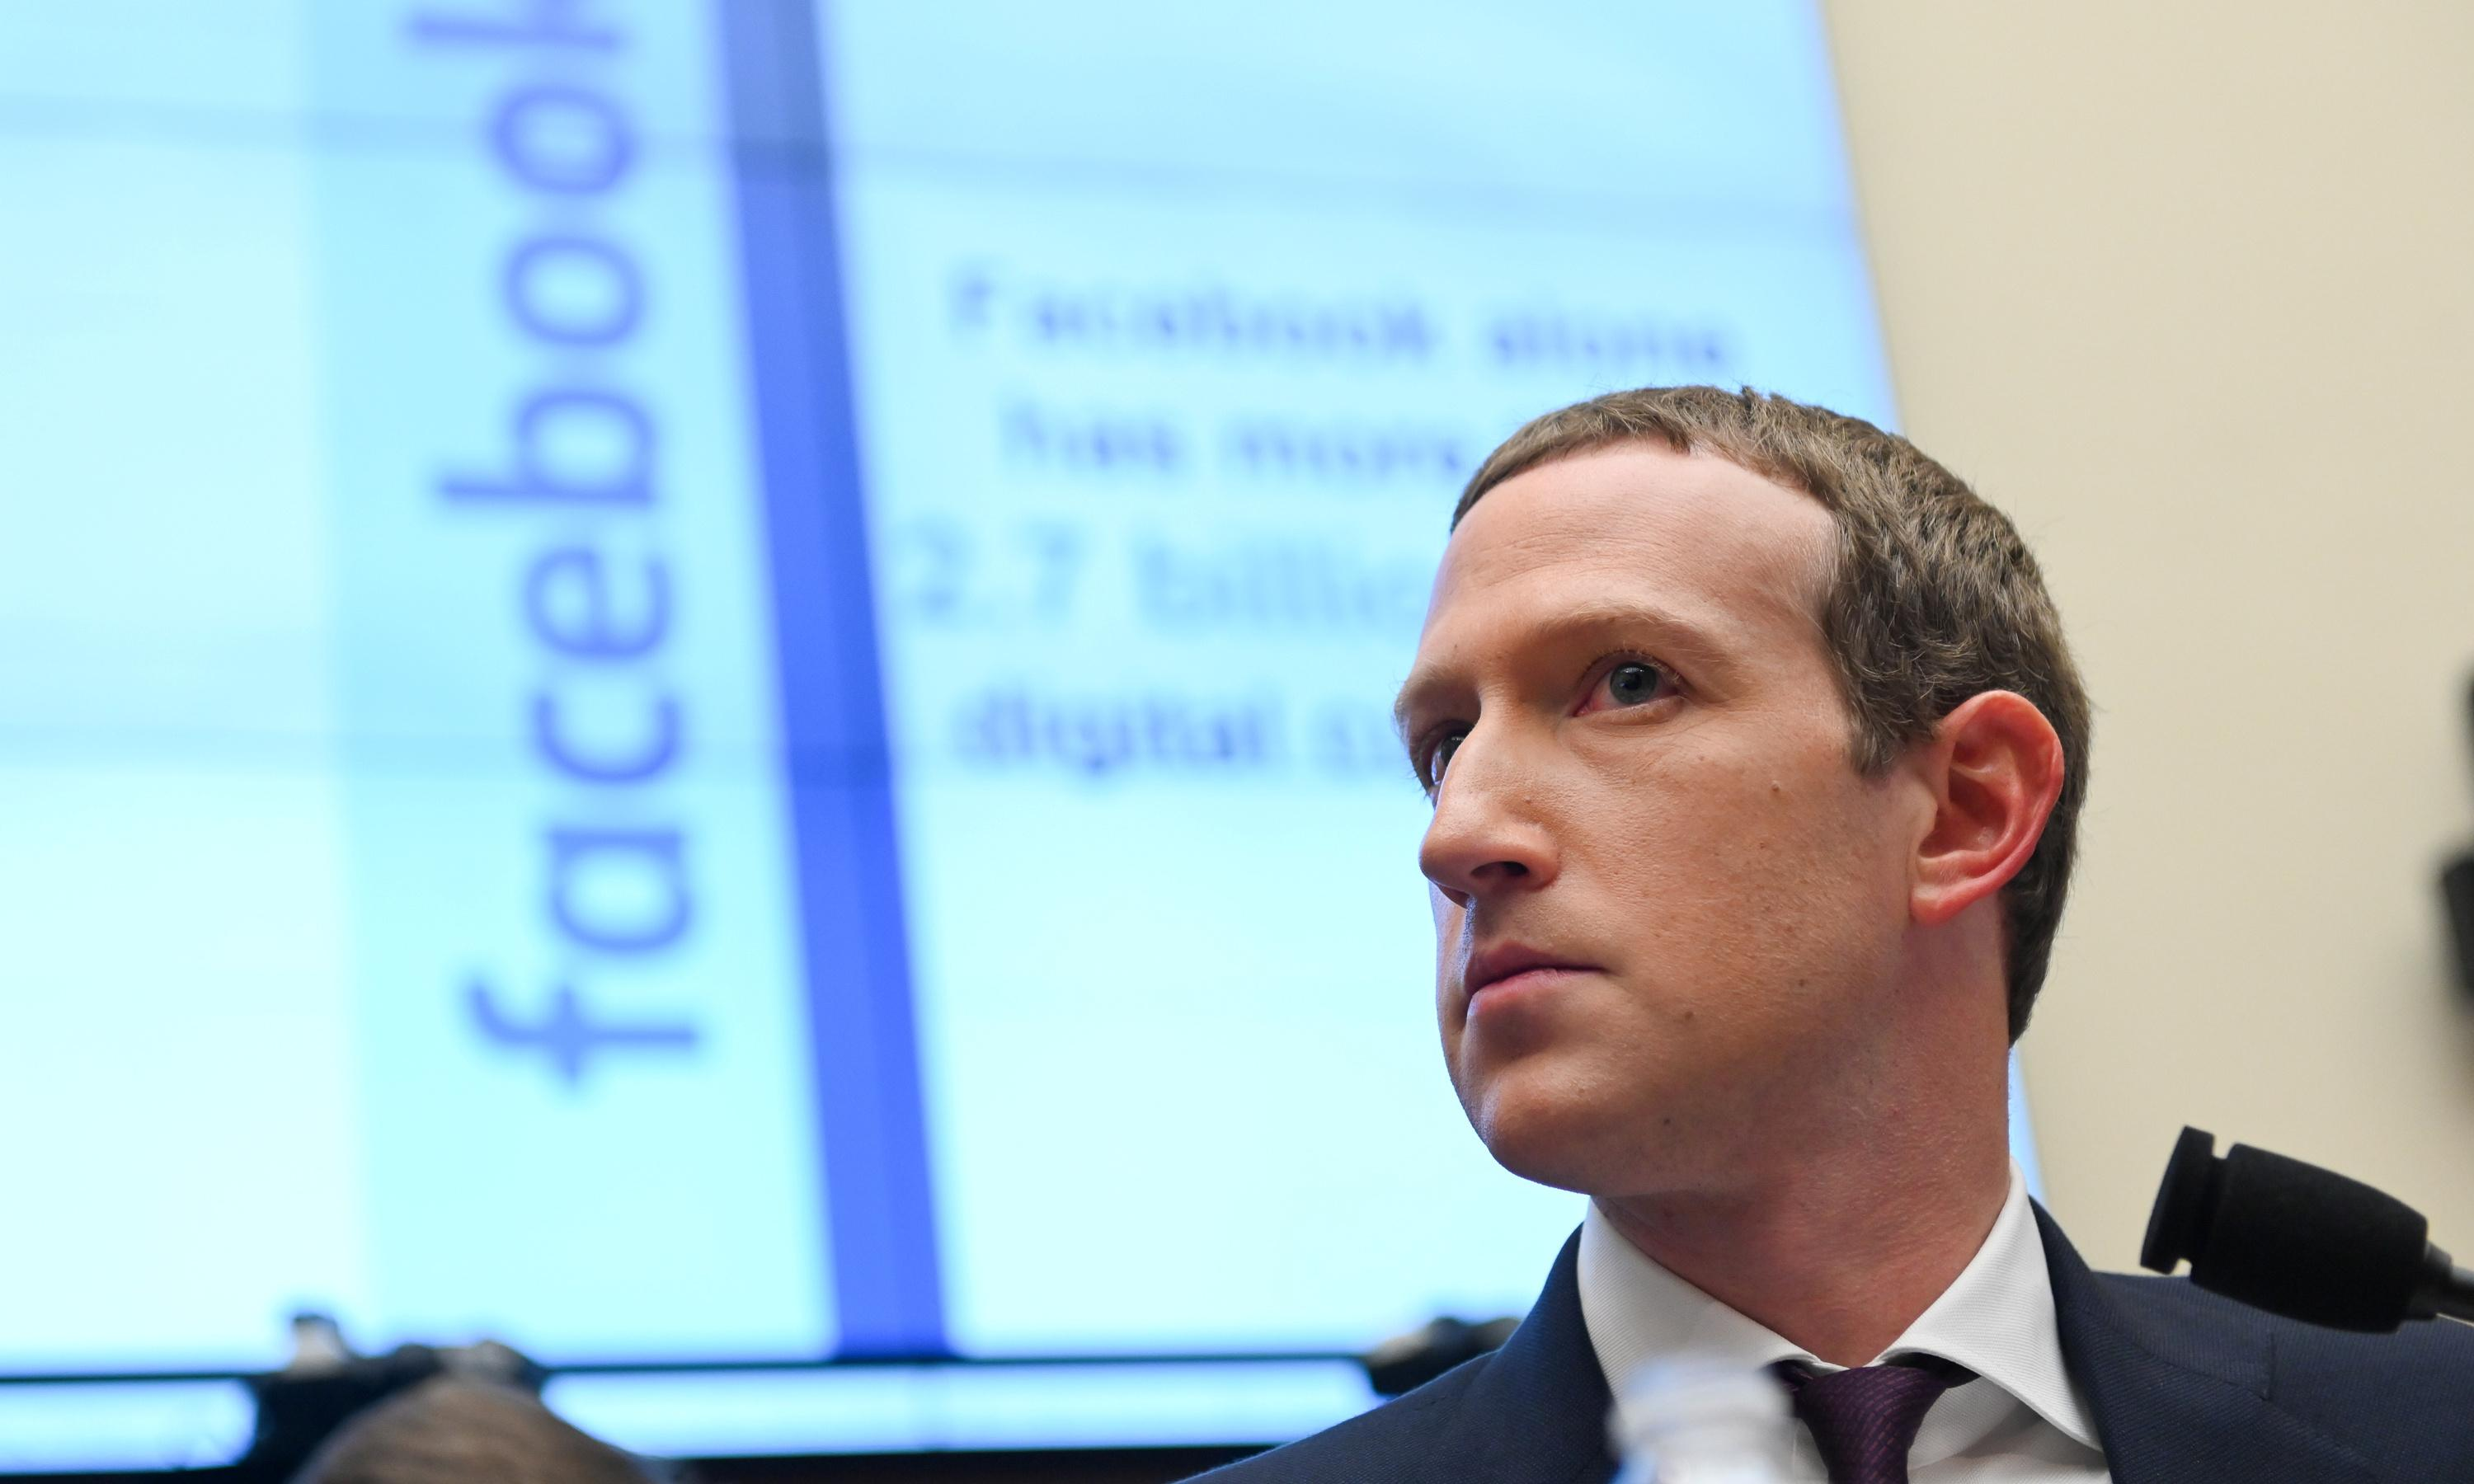 By shirking its responsibility to filter out lies, Facebook is a threat to civic society